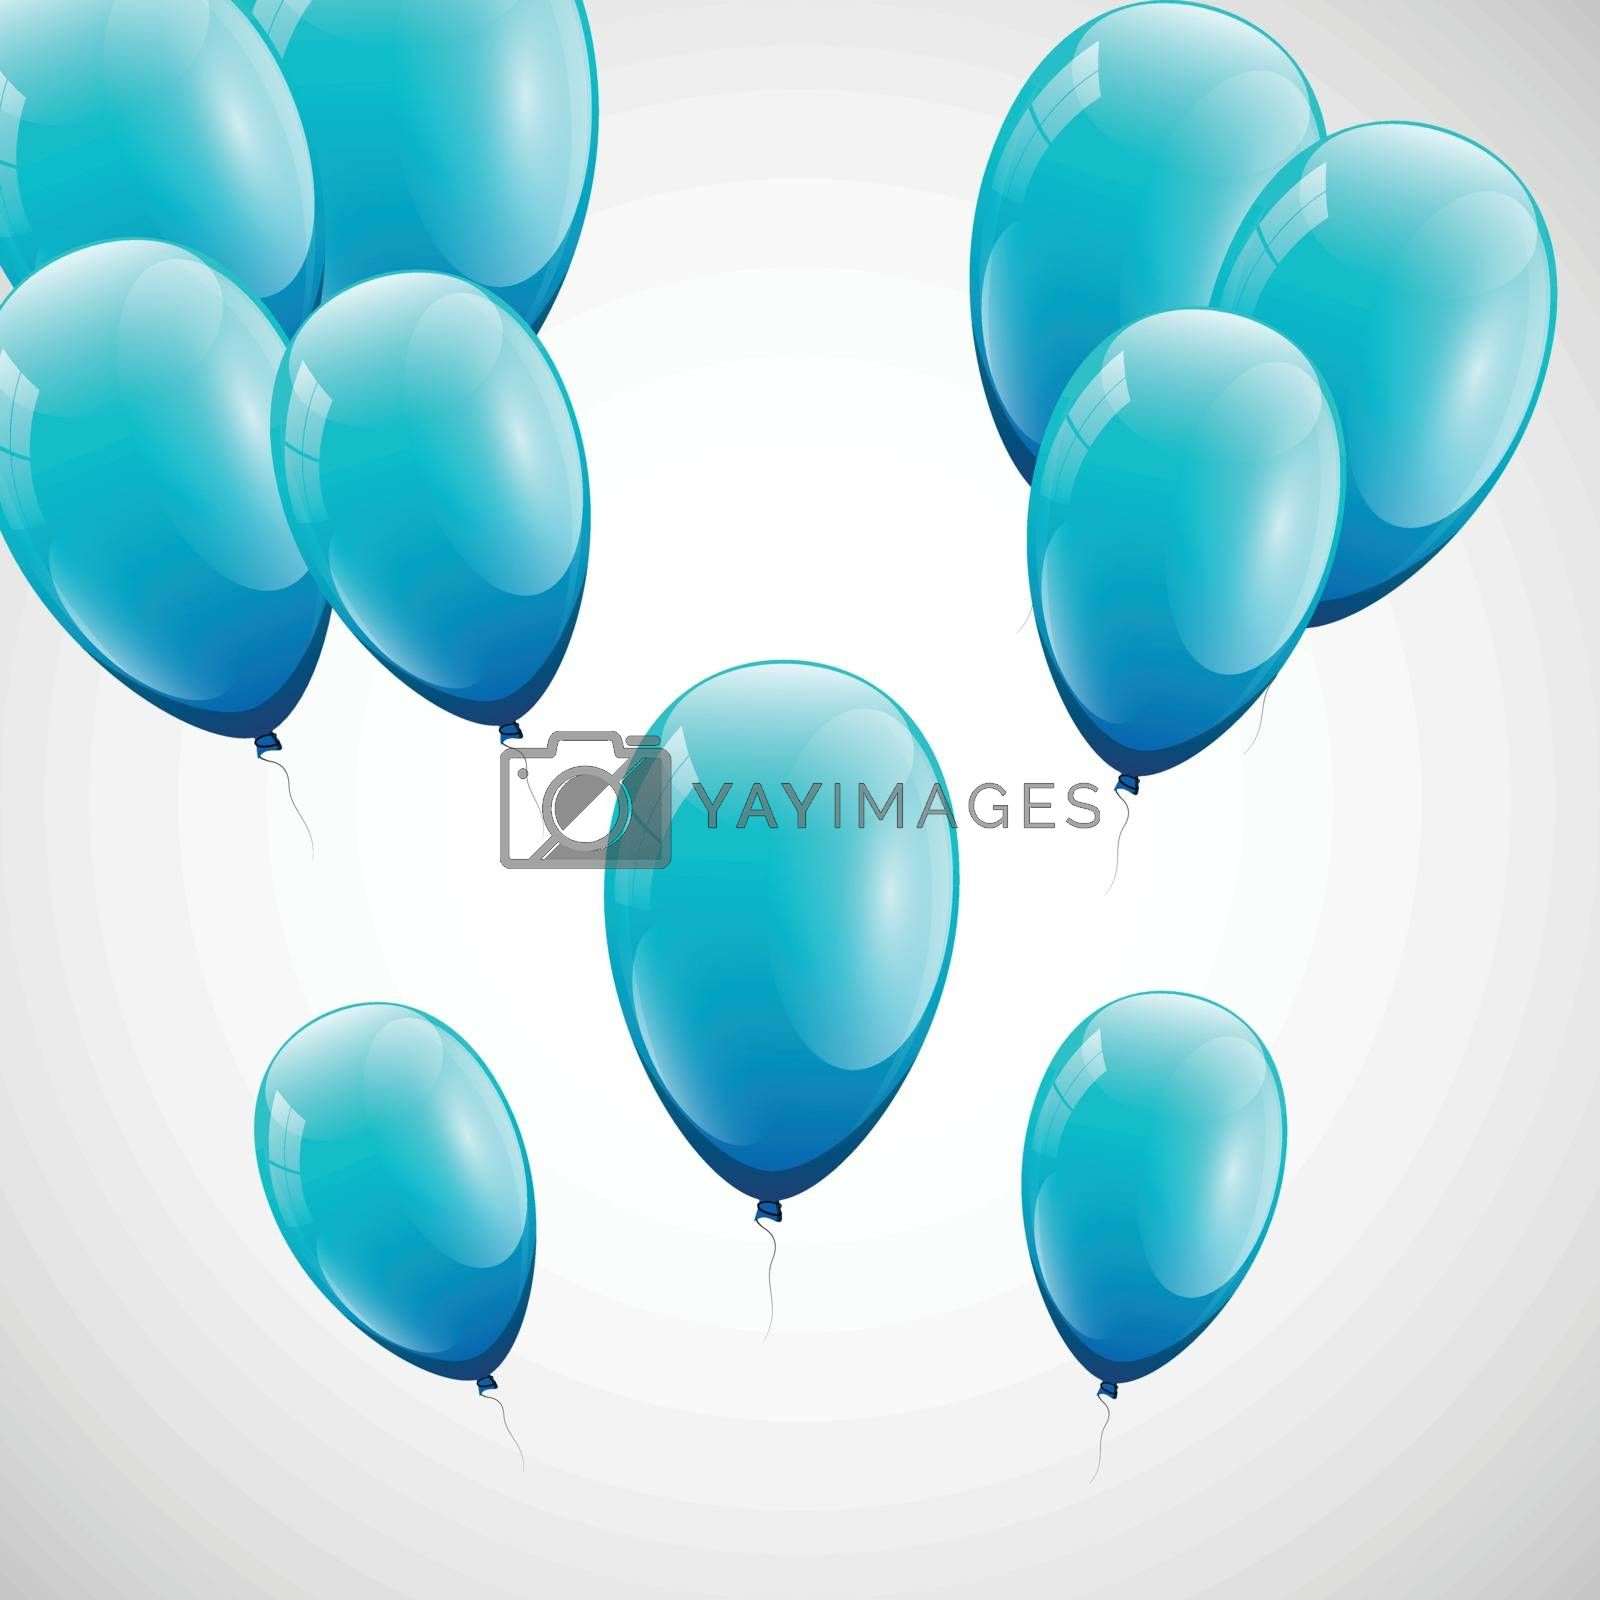 Blue balloons with white background, stock vector